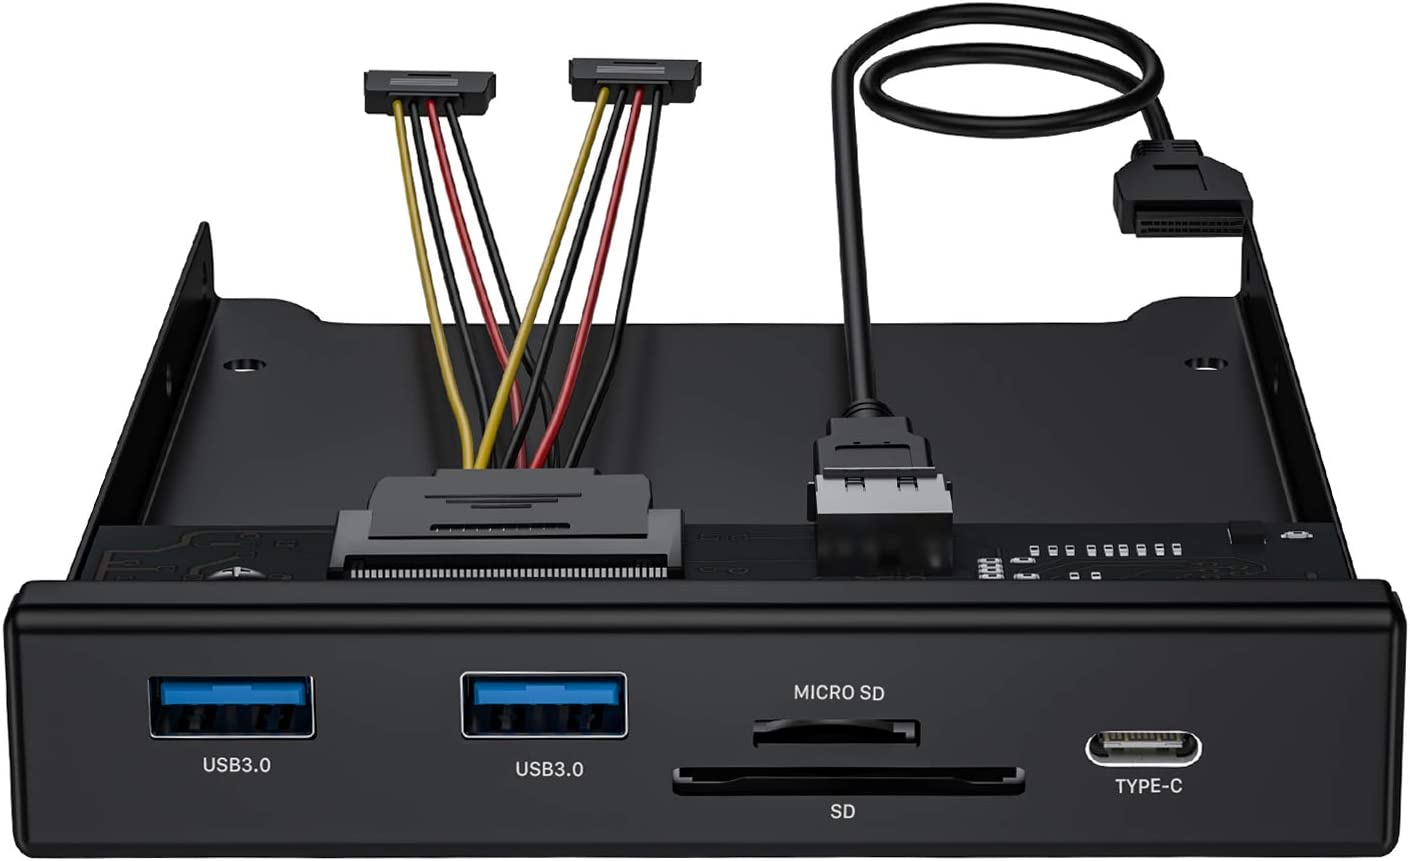 BYEASY Front Panel USB 3.0 Hub 5 Ports, 3.5 Inches Internal Metal USB Hub with 2 USB 3.0 Ports, SD/TF Card Reader and USB 3.1 Gen 1 Type-C Port Fits Any 3.5